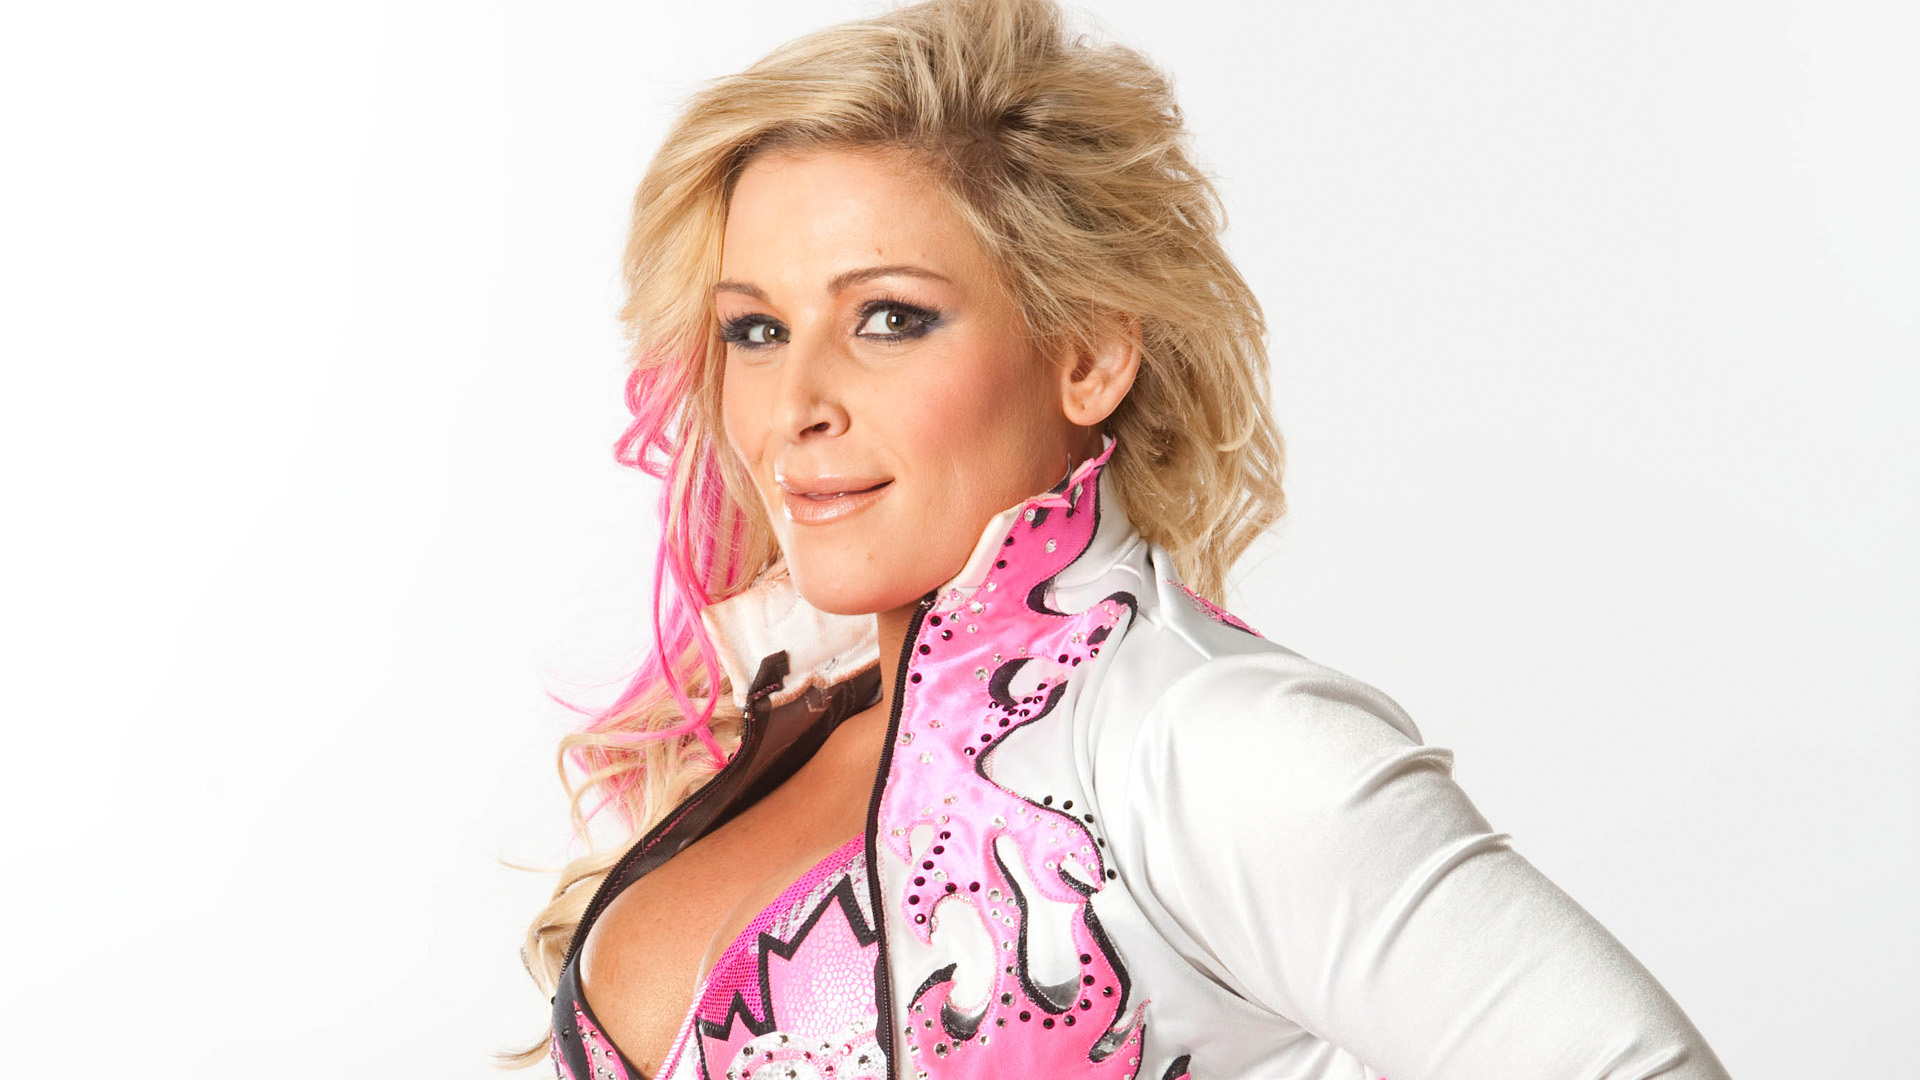 Natalya wwe divas wallpaper 20702281 fanpop - Wwe divas wallpapers ...